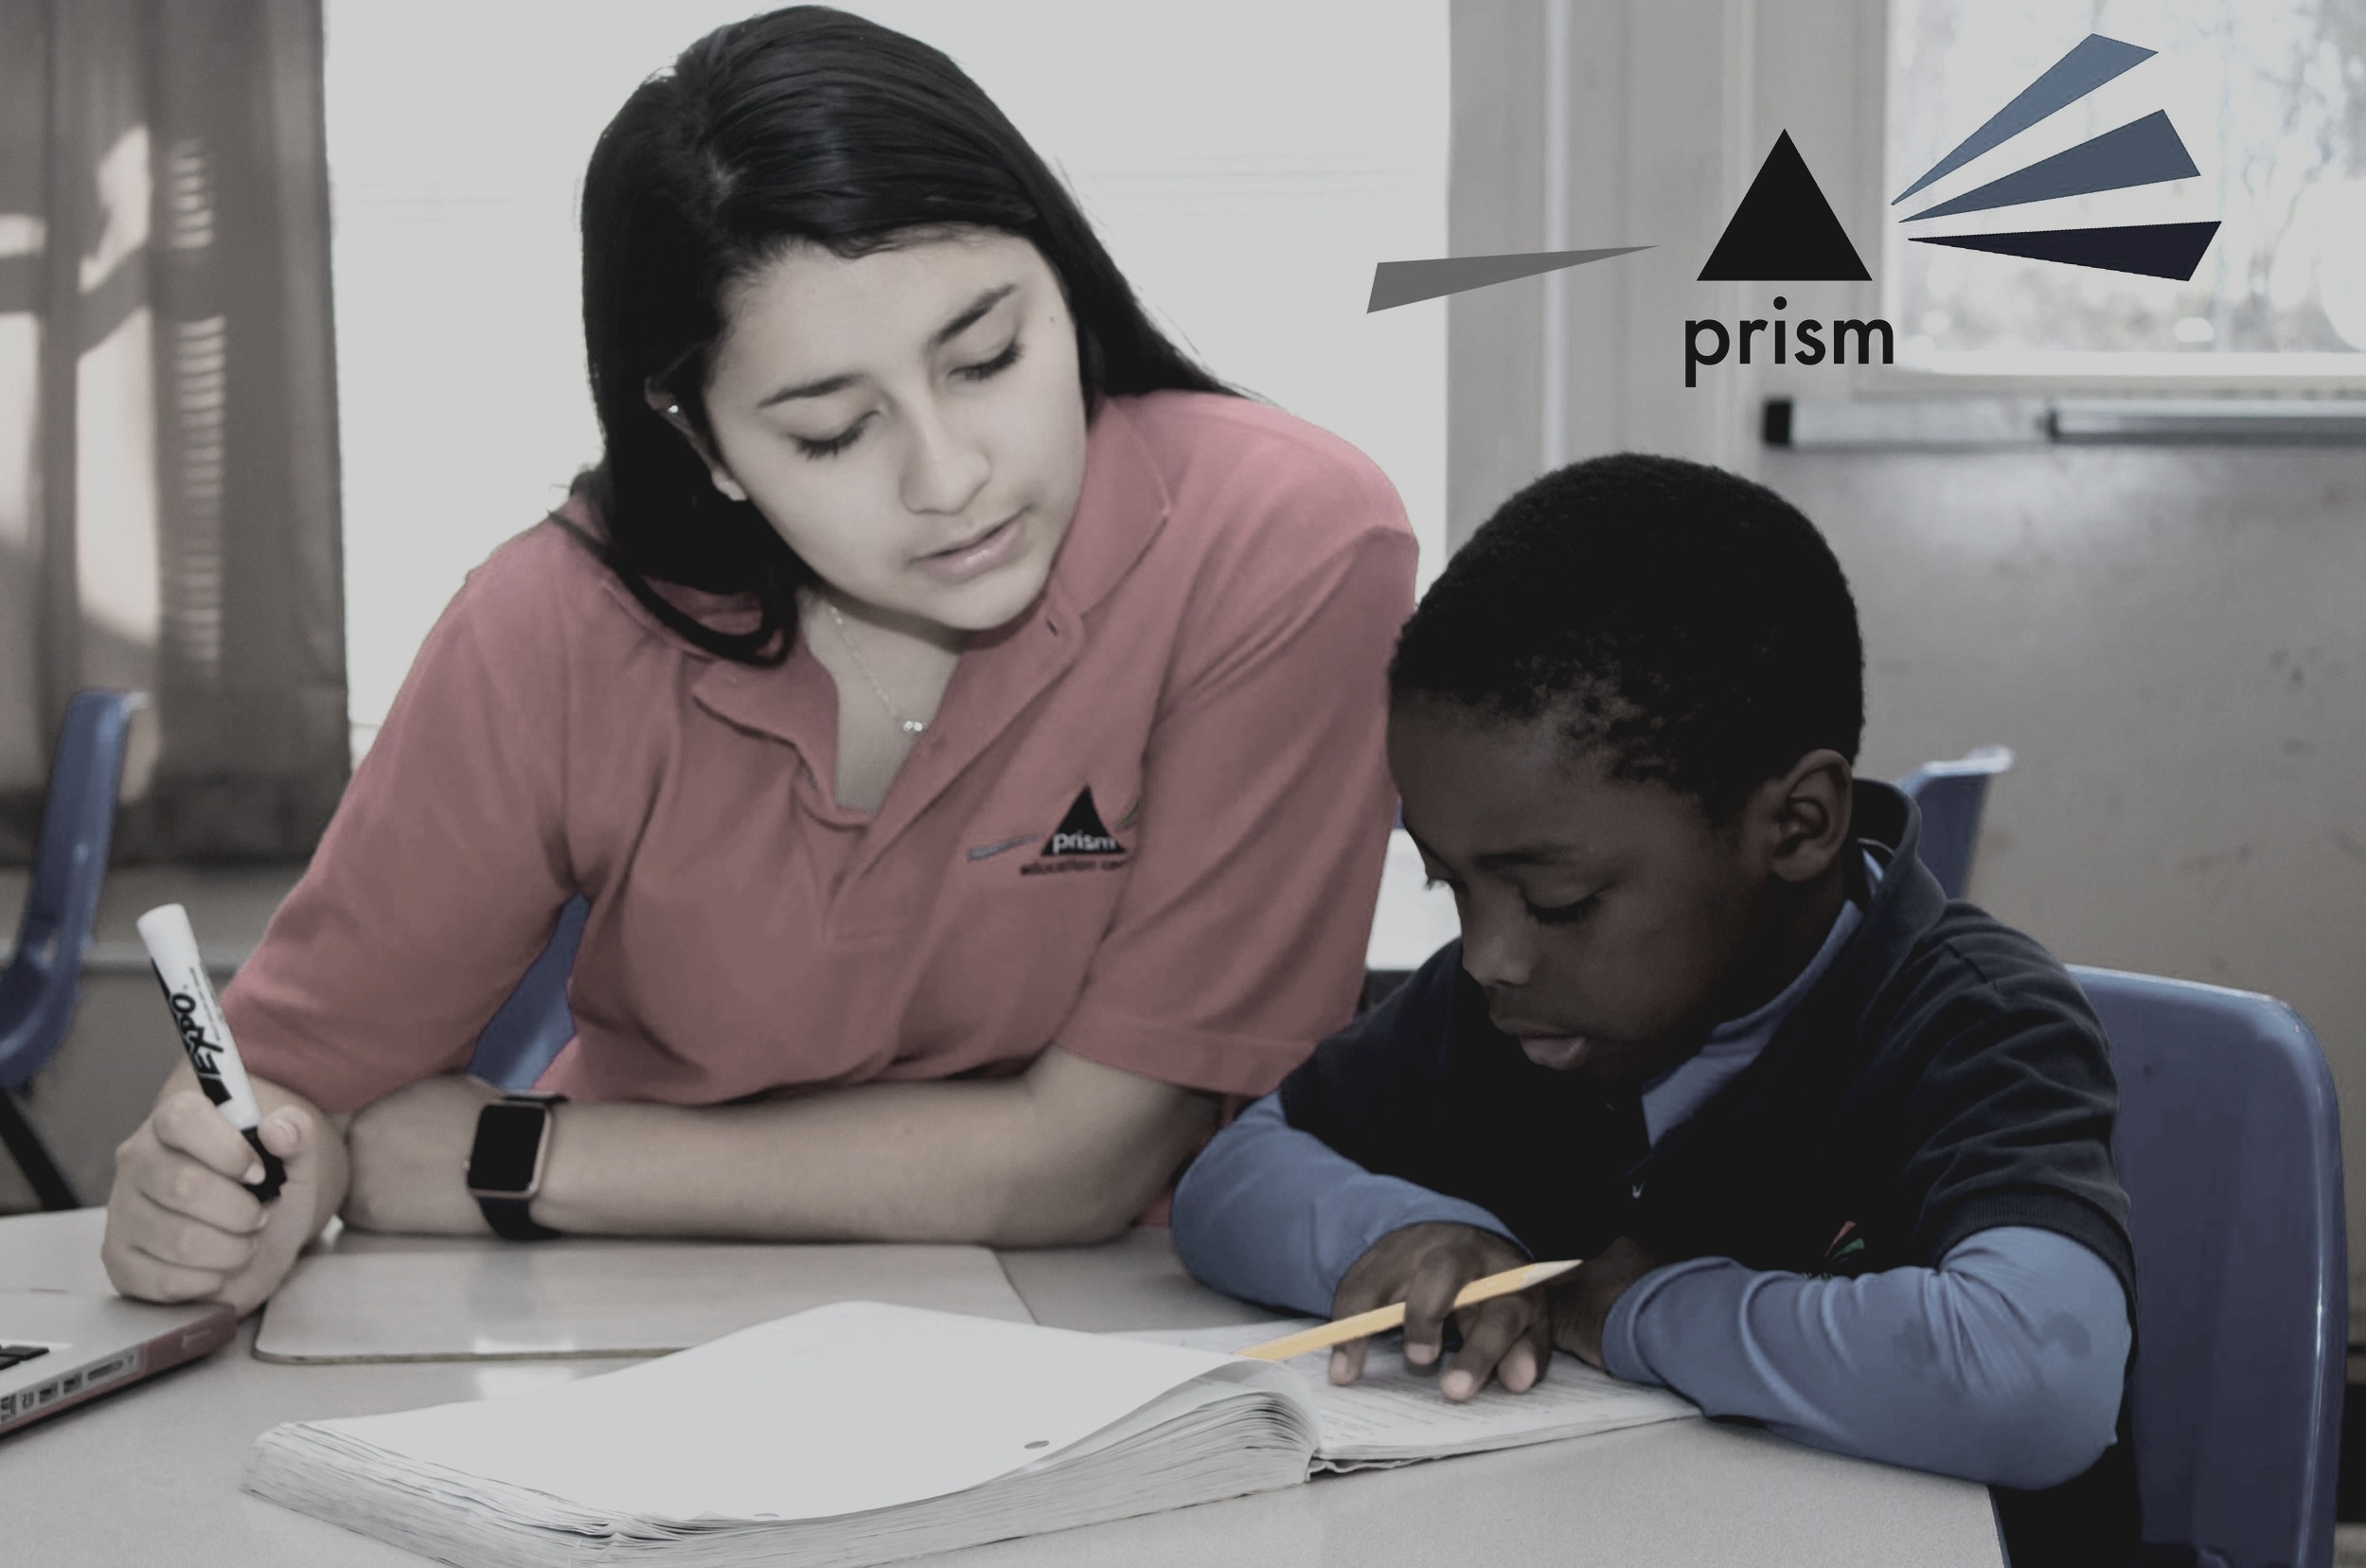 Learn More about Prism's Internships for 18-24-year-olds - Change your life. Change a child's life. Change the world.#makeyourmark#prismleadershipacademy